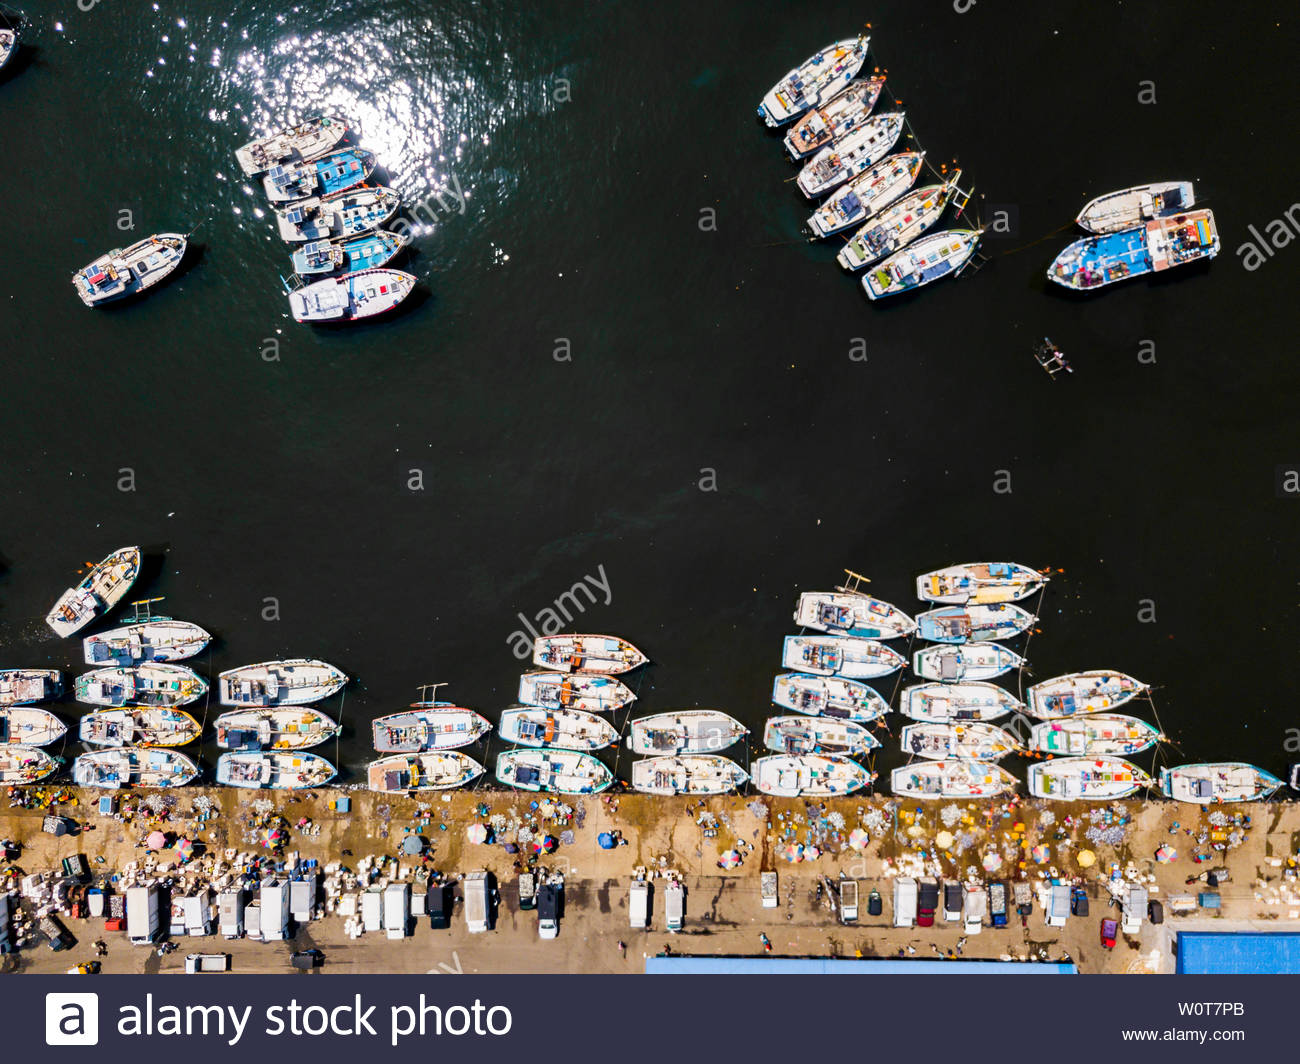 Aerial view of fishing boats in a small port. Kudawella, Sri Lanka. - Stock Image